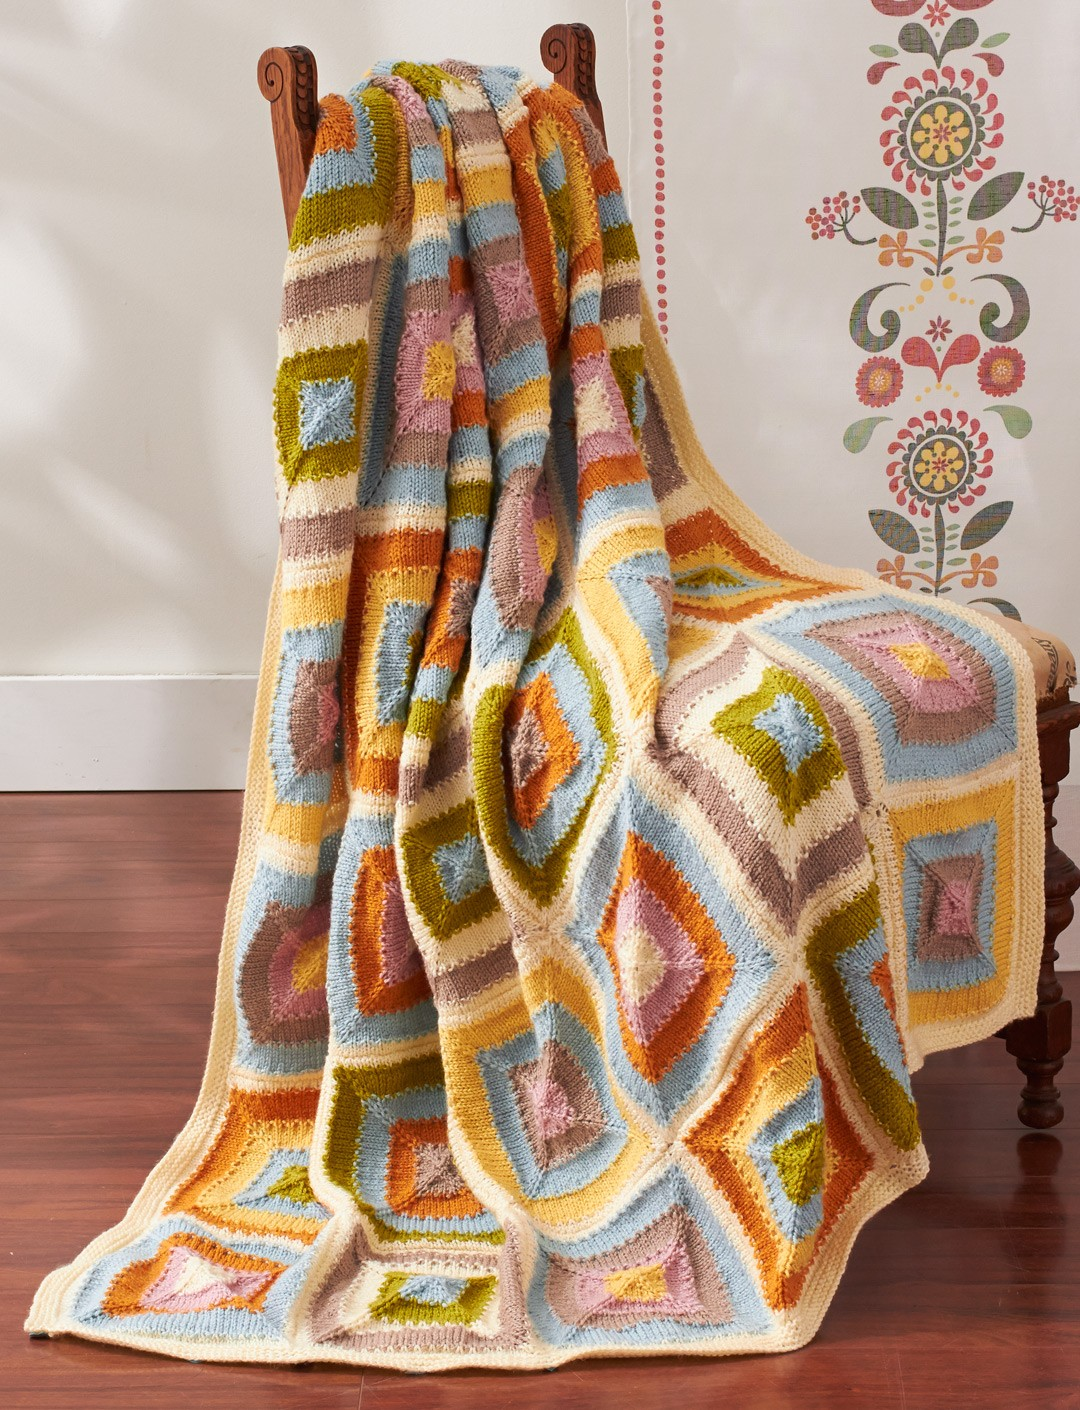 Free Knitting Pattern For Patchwork Quilt : Patons Patchwork Blanket, Knit Pattern Yarnspirations